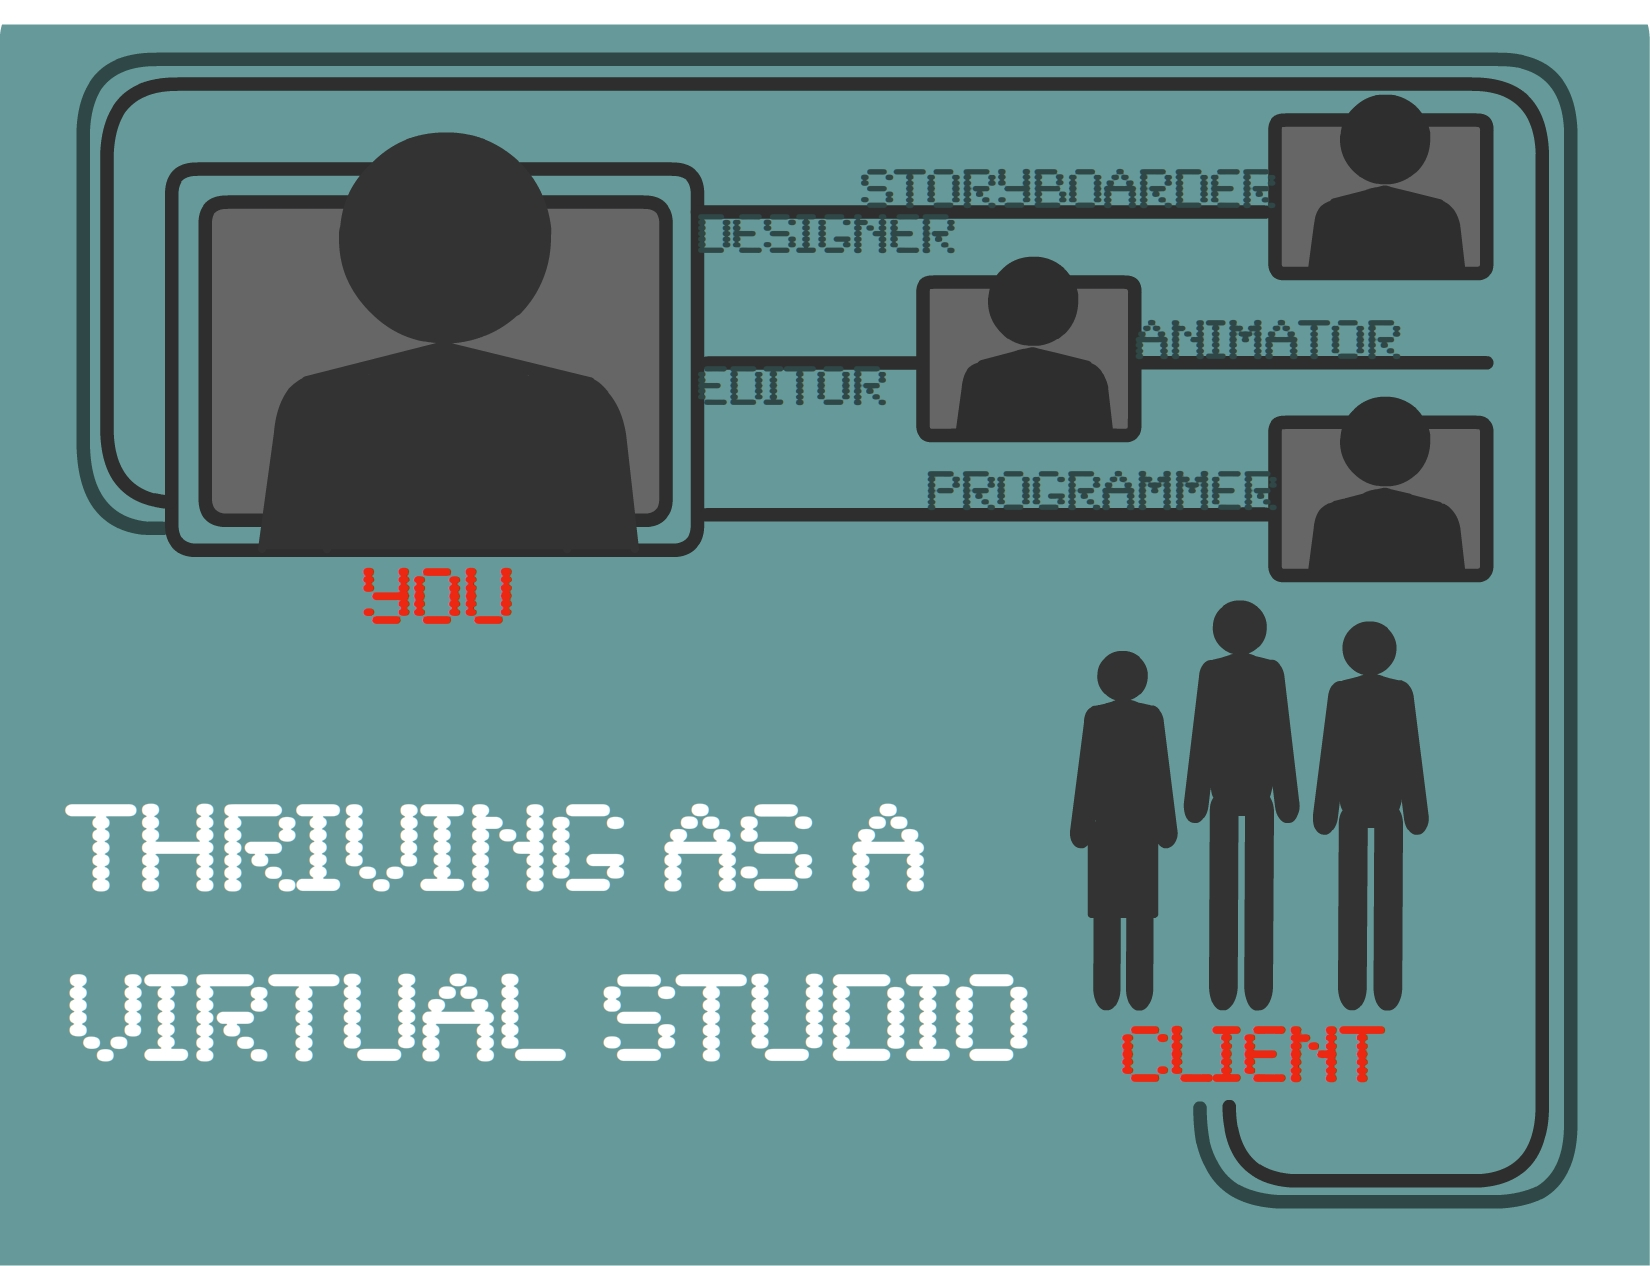 ASIFA-East presents: Thriving as a Virtual Studio